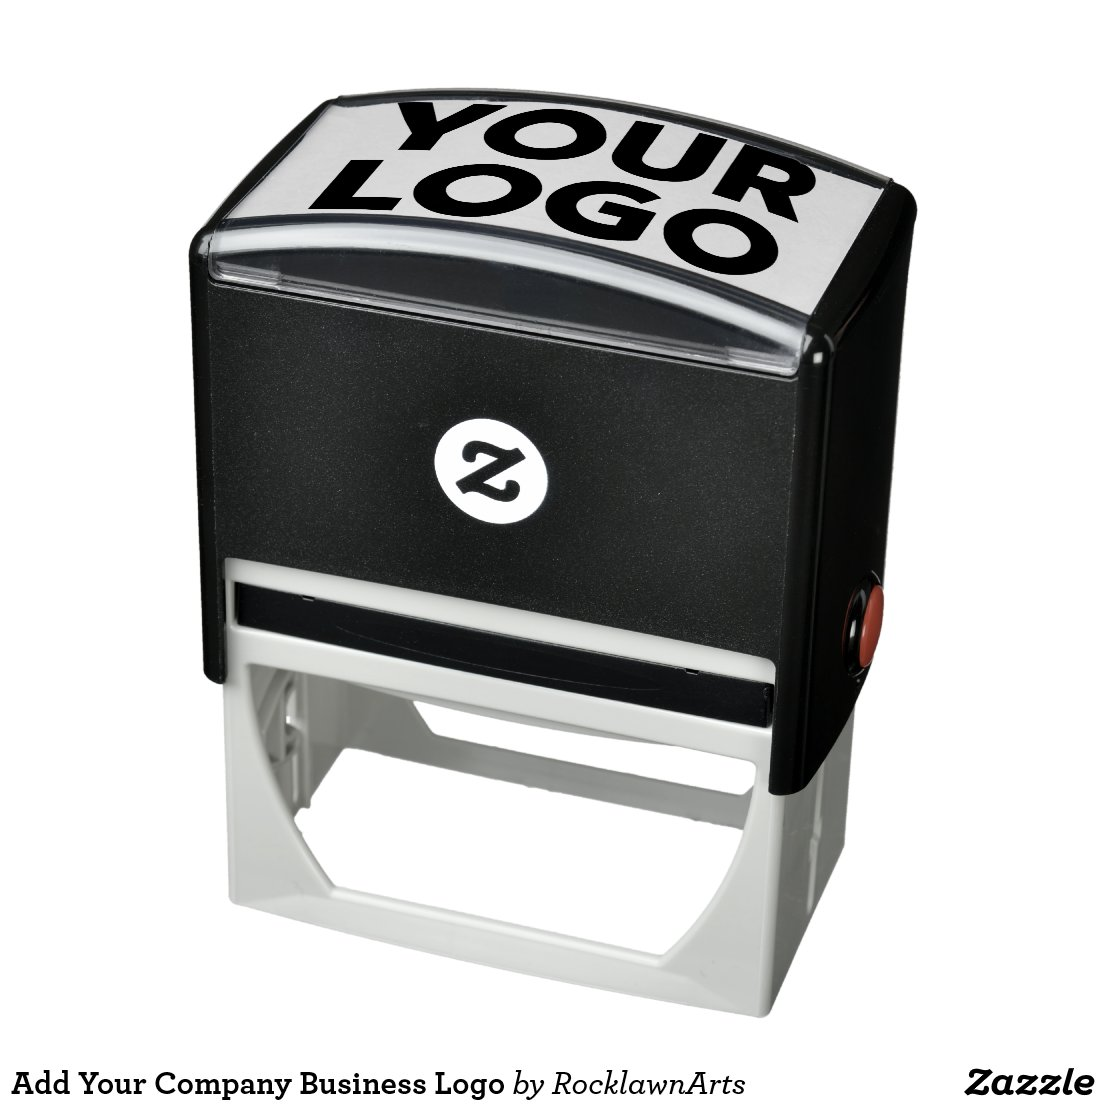 Add Your Company Business Logo Self-inking Stamp